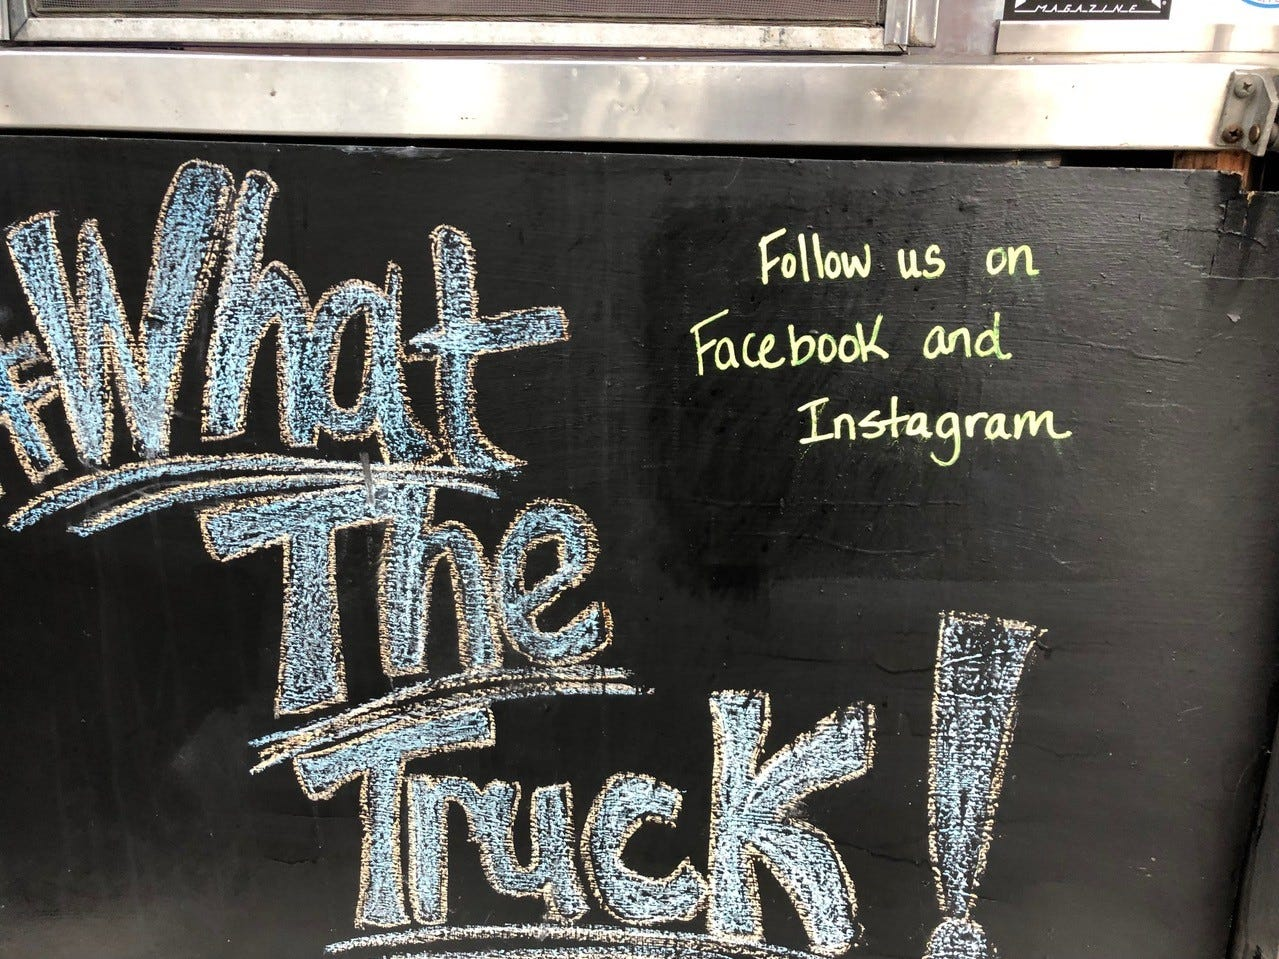 Keep up with What the Truck food truck via social media: Facebook and Instagram.